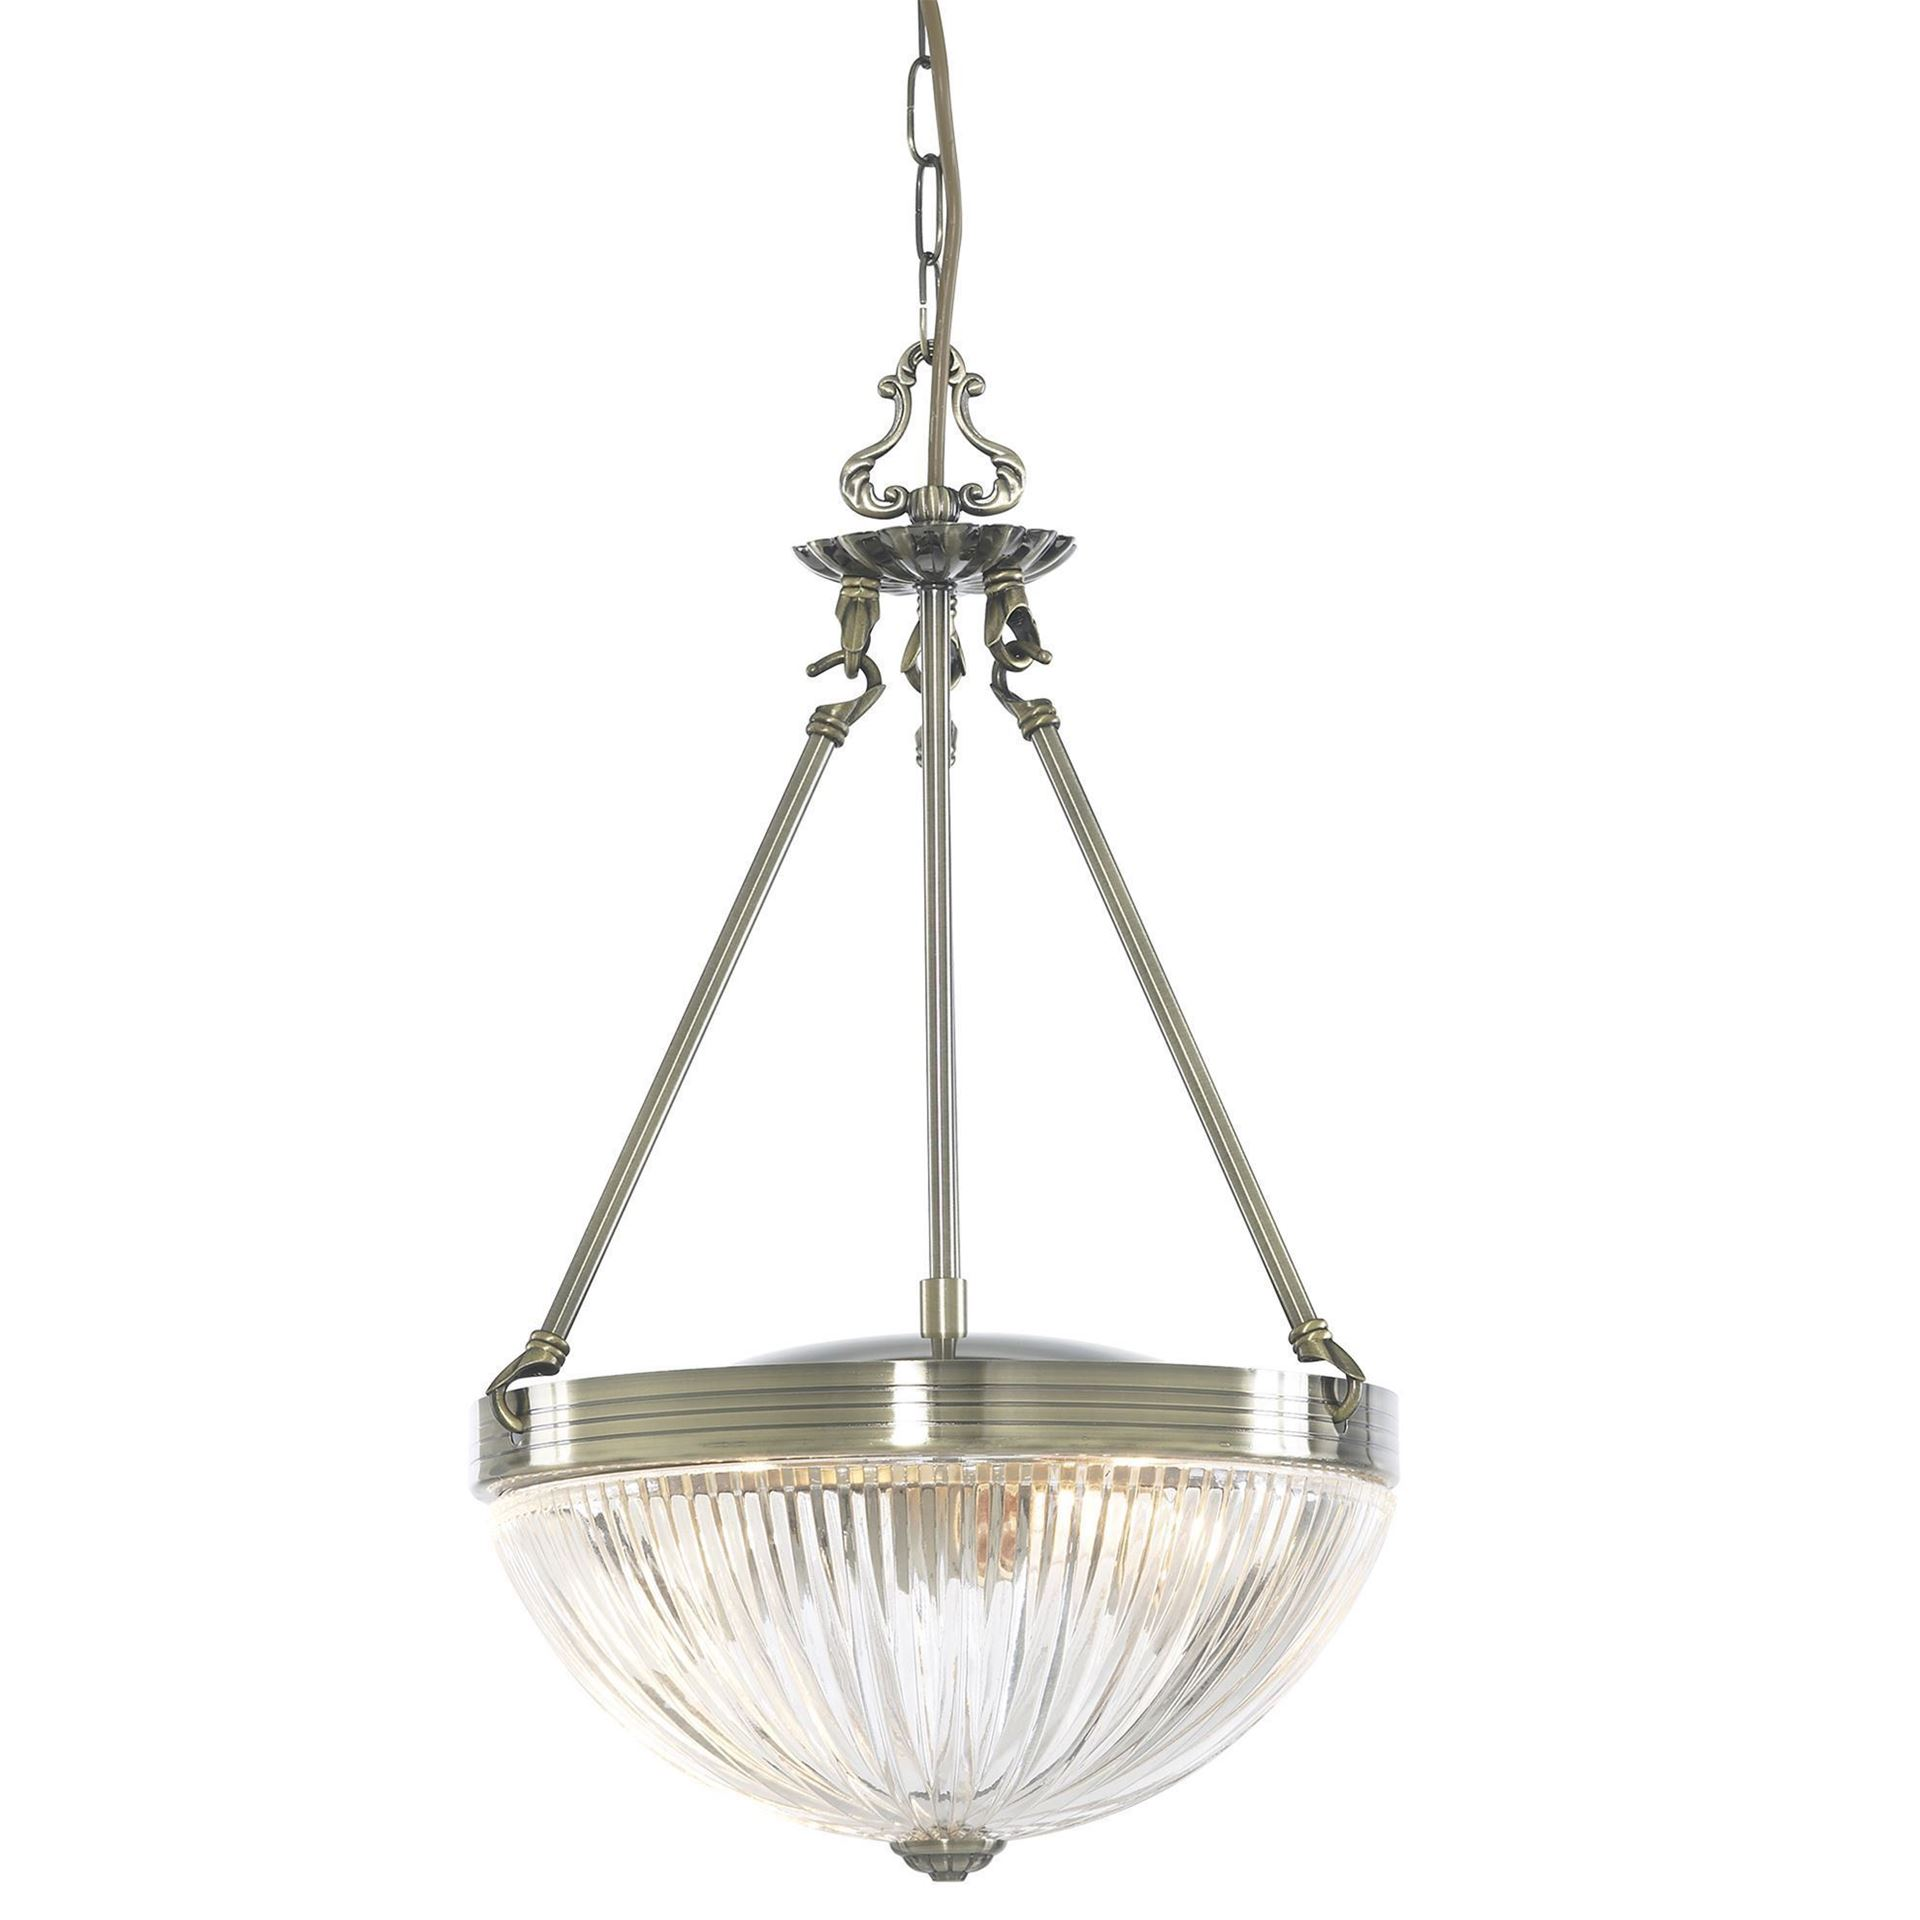 WINDSOR II ANTIQUE BRASS 2 LIGHT FITTING WITH CLEAR RIBBED GLASS SHADES 4772-2AB